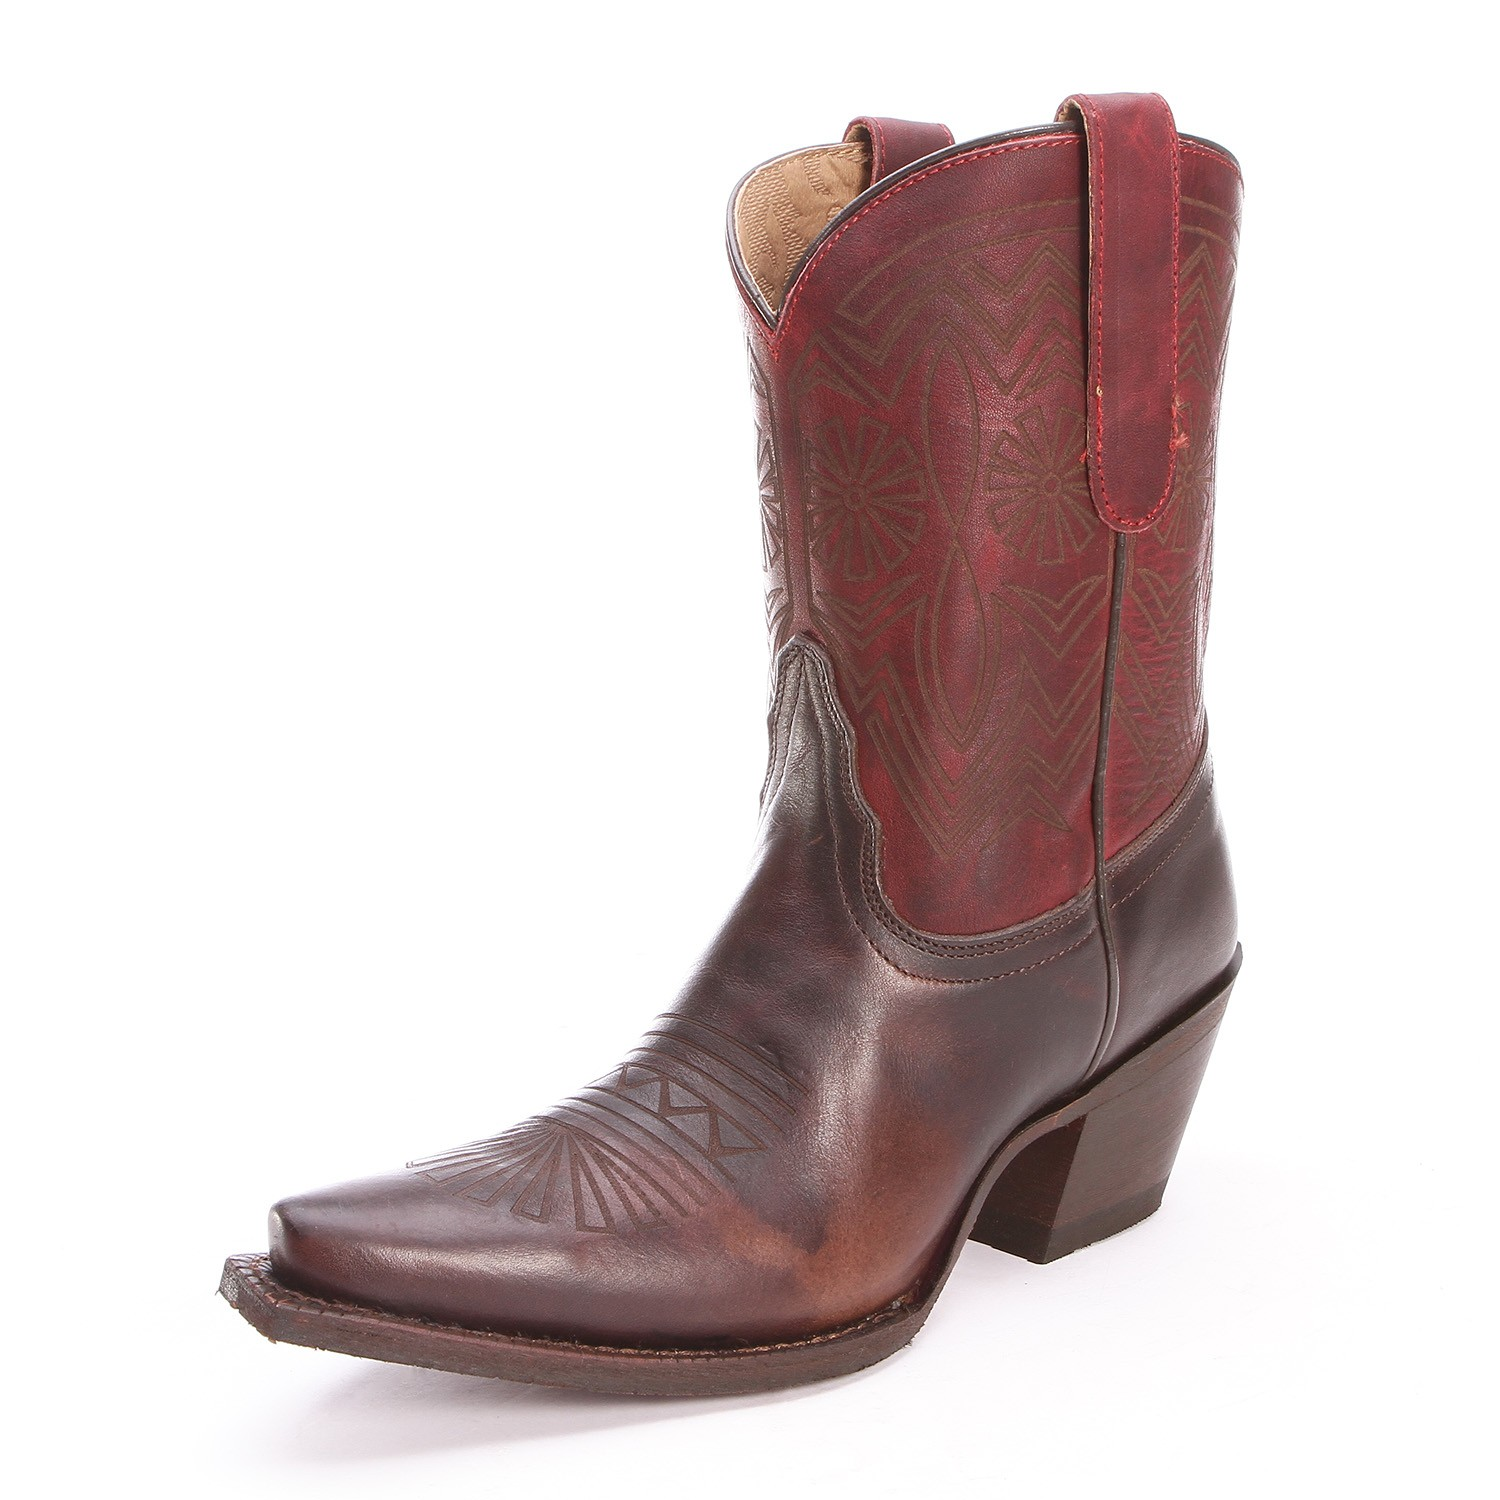 Clearance Cowgirl Boots WcGFMbGX